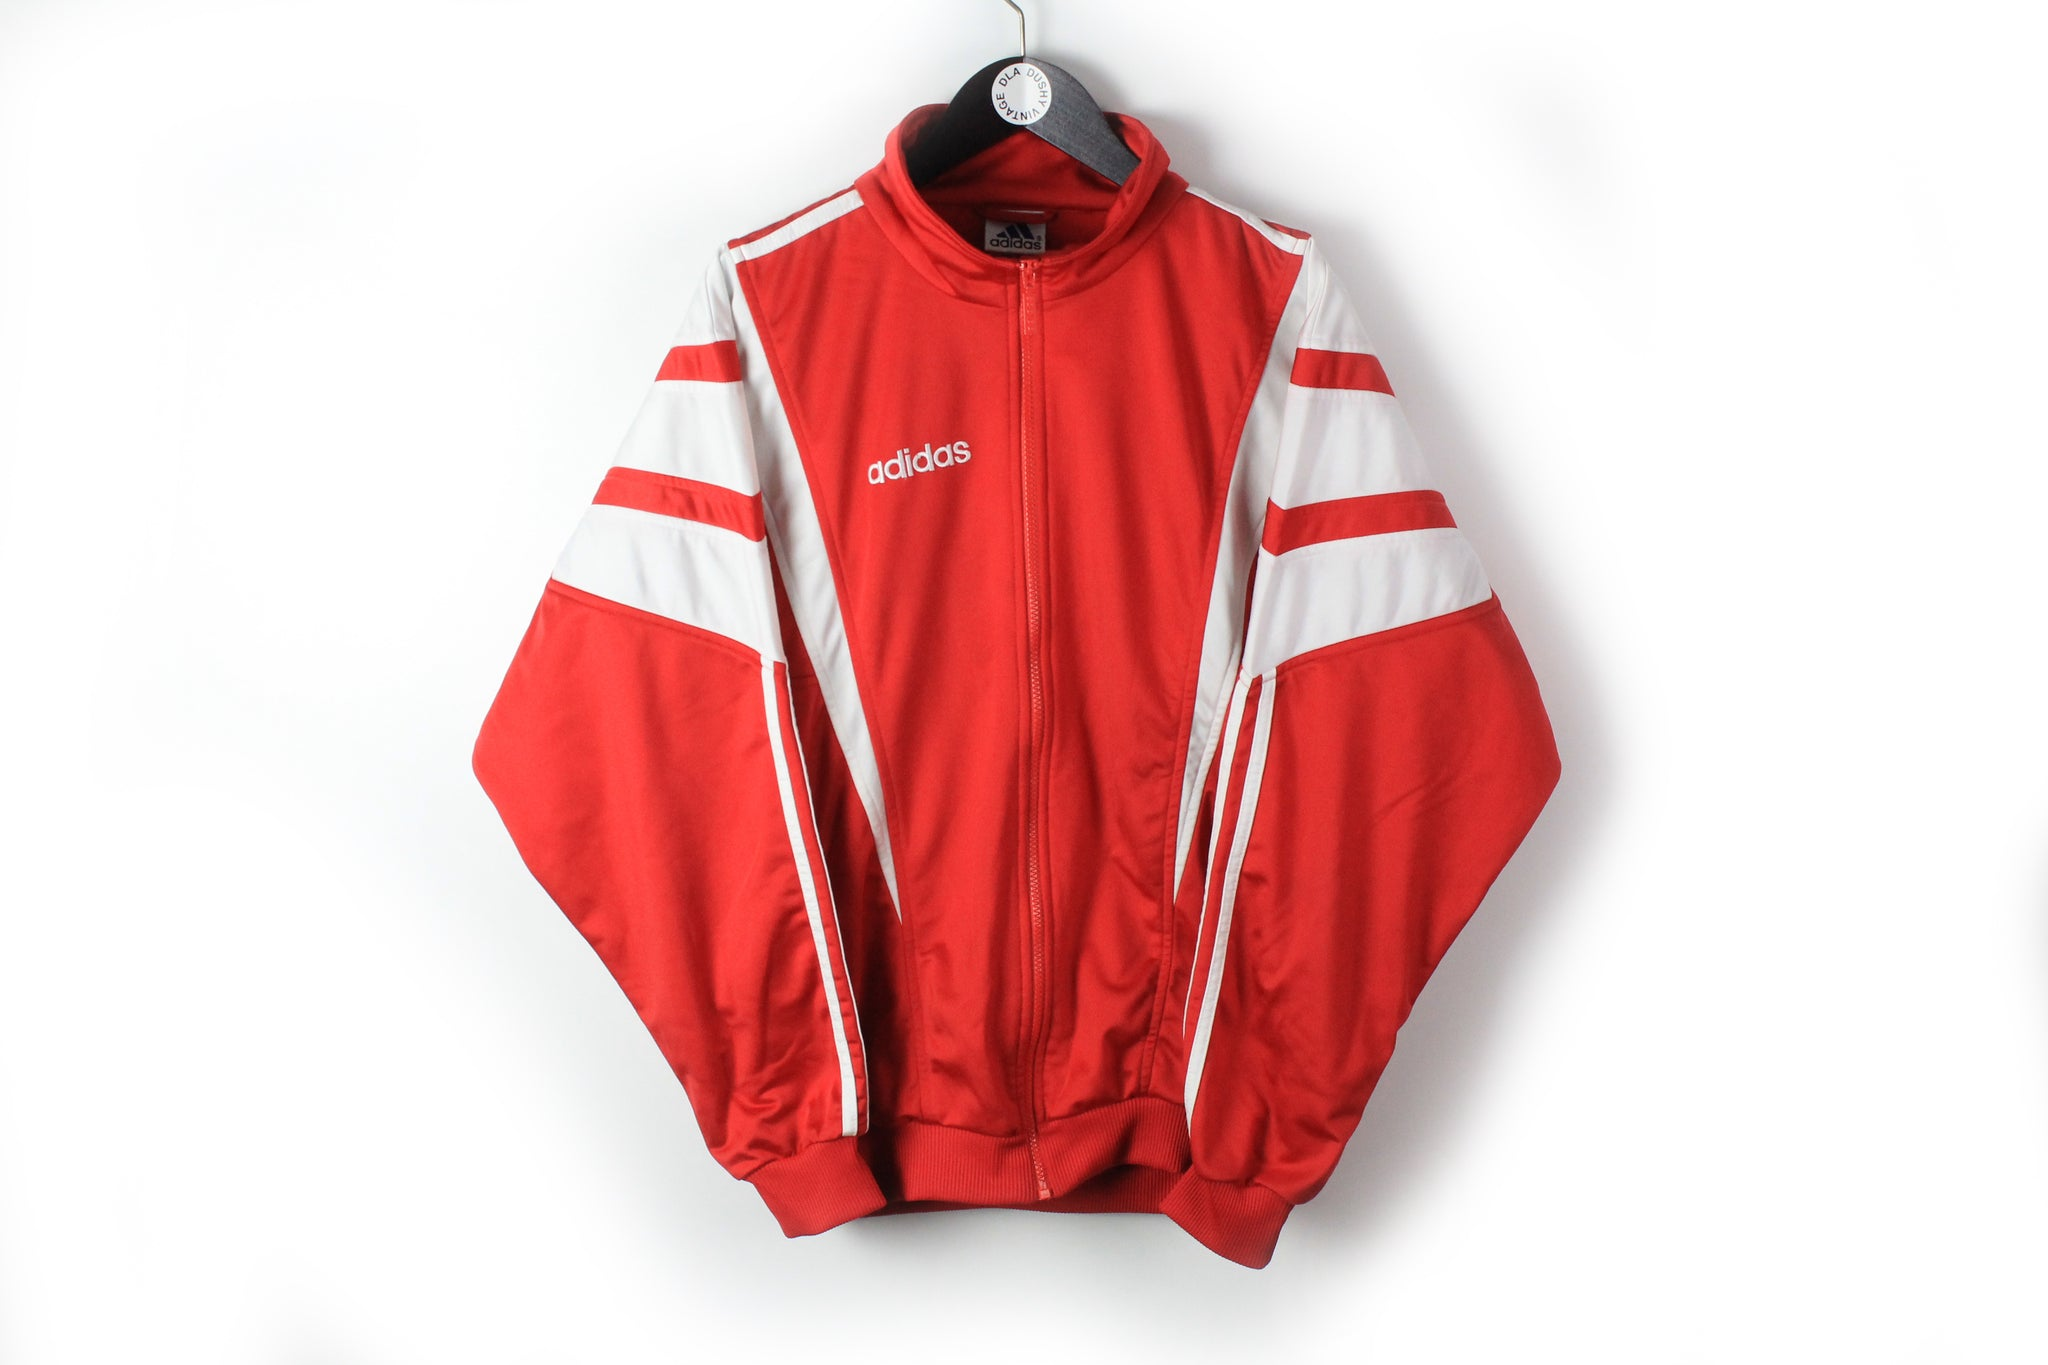 Vintage Adidas Track Jacket Large red big logo windbreaker 90s sport style jacket